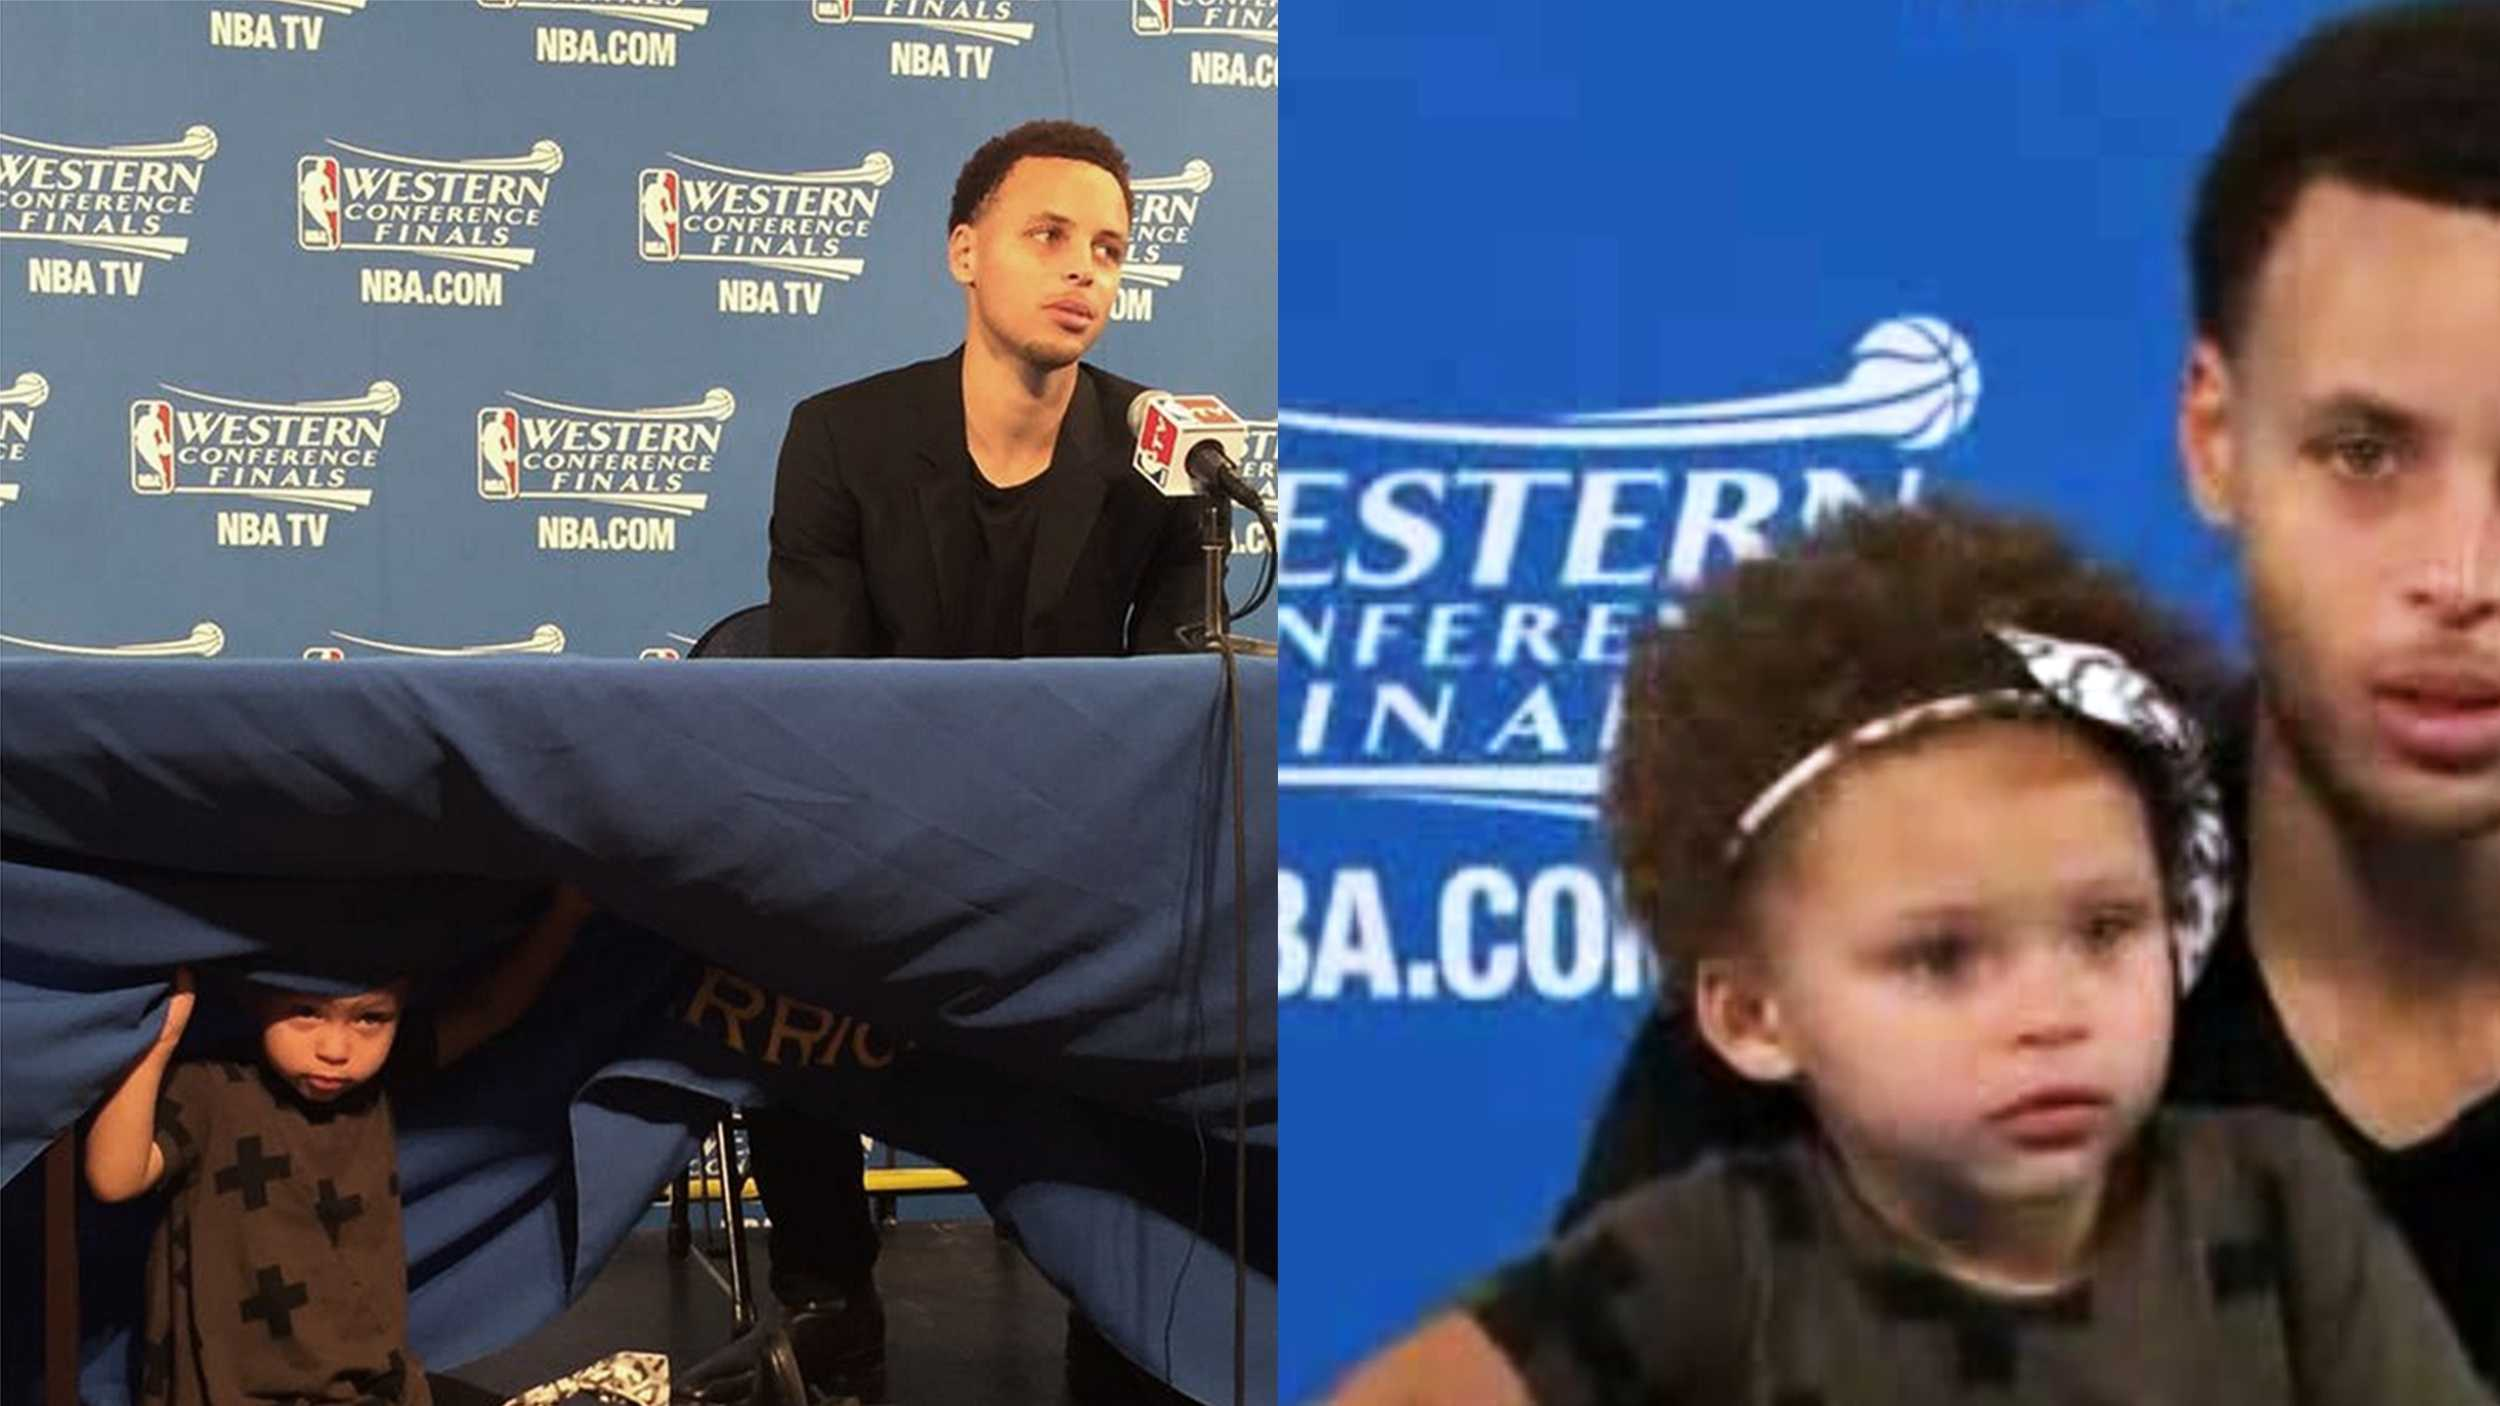 Stephen Curry and his cute daughter